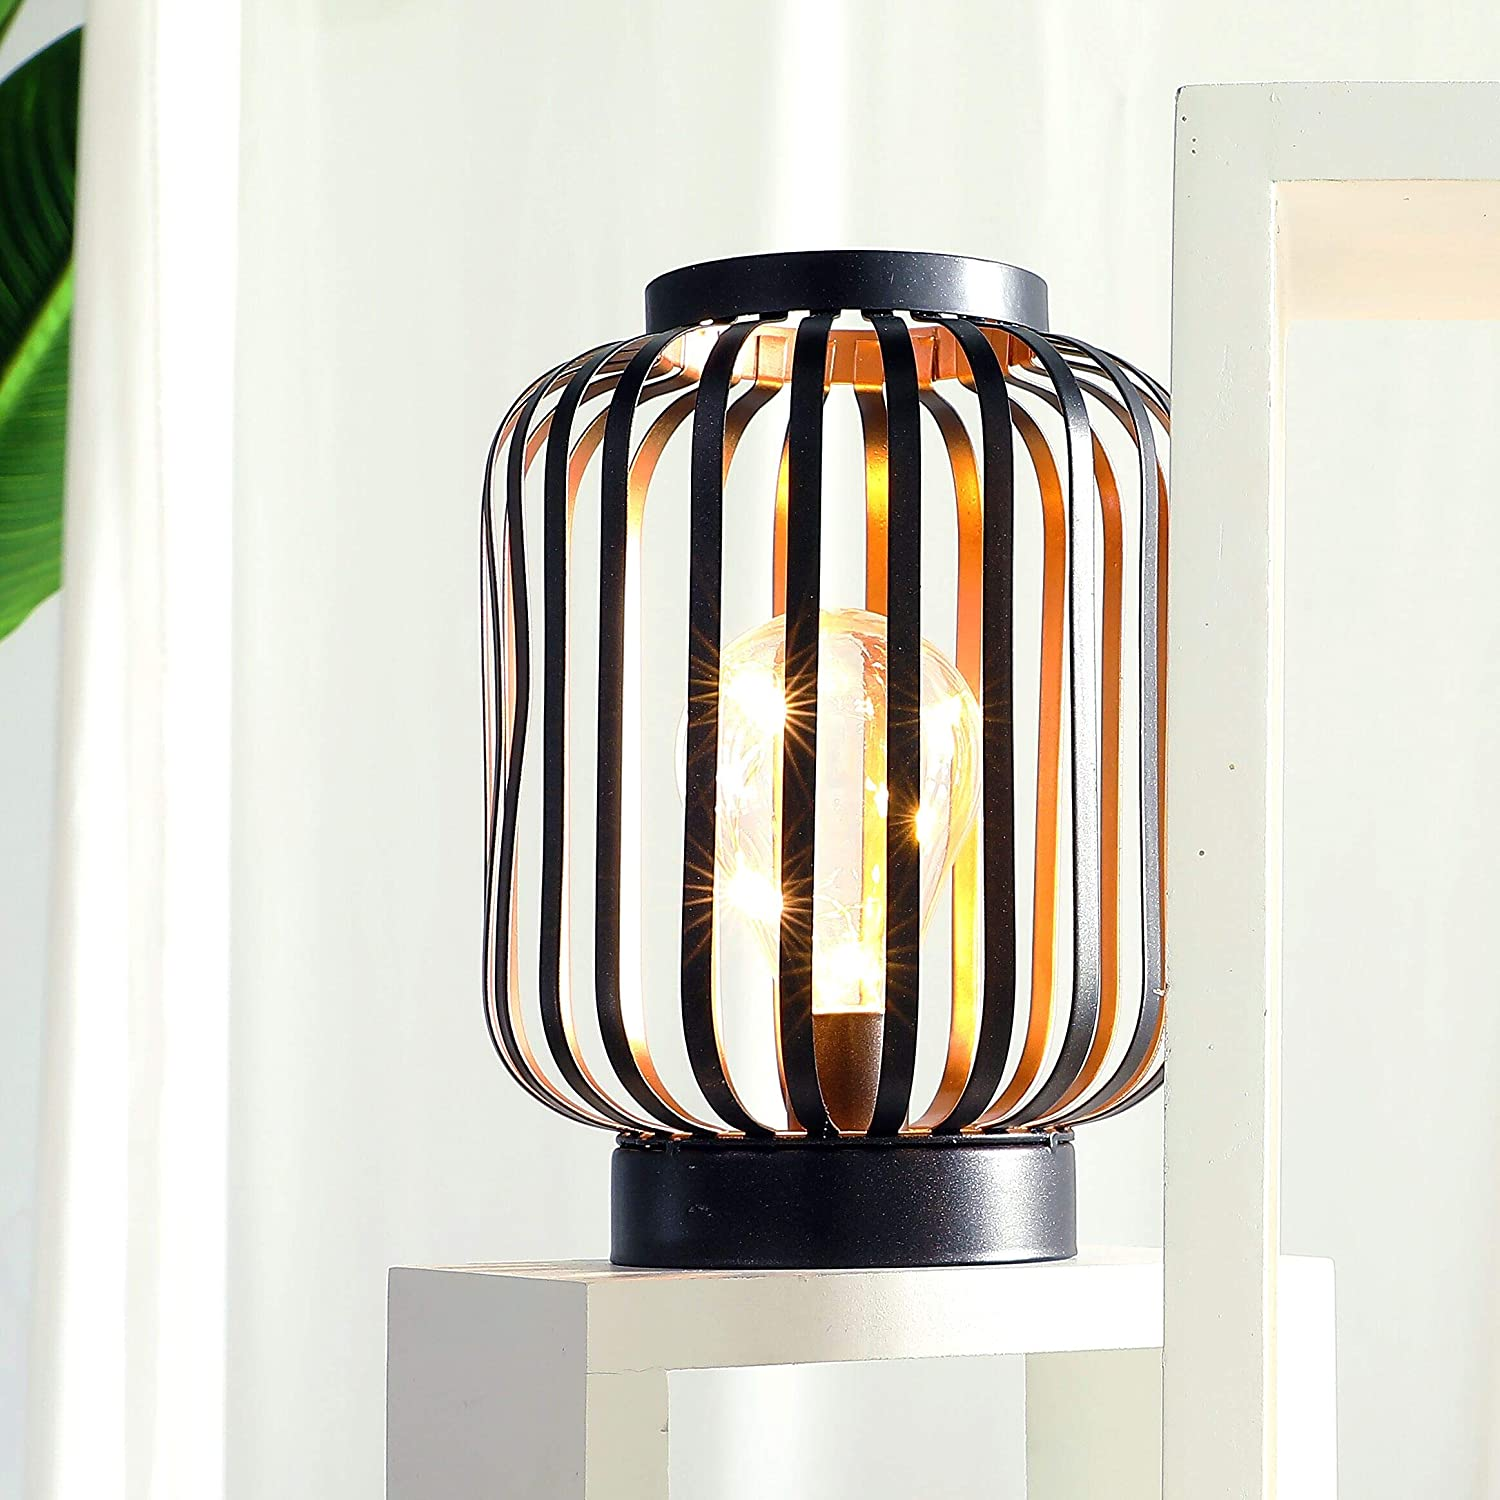 "8.7"" High Metal Cage Decorative Lamp Battery Powered Cordless Warm White Light with LED Edison Style Bulb Great for Weddings Parties Patio Events for Indoors/Outdoors"